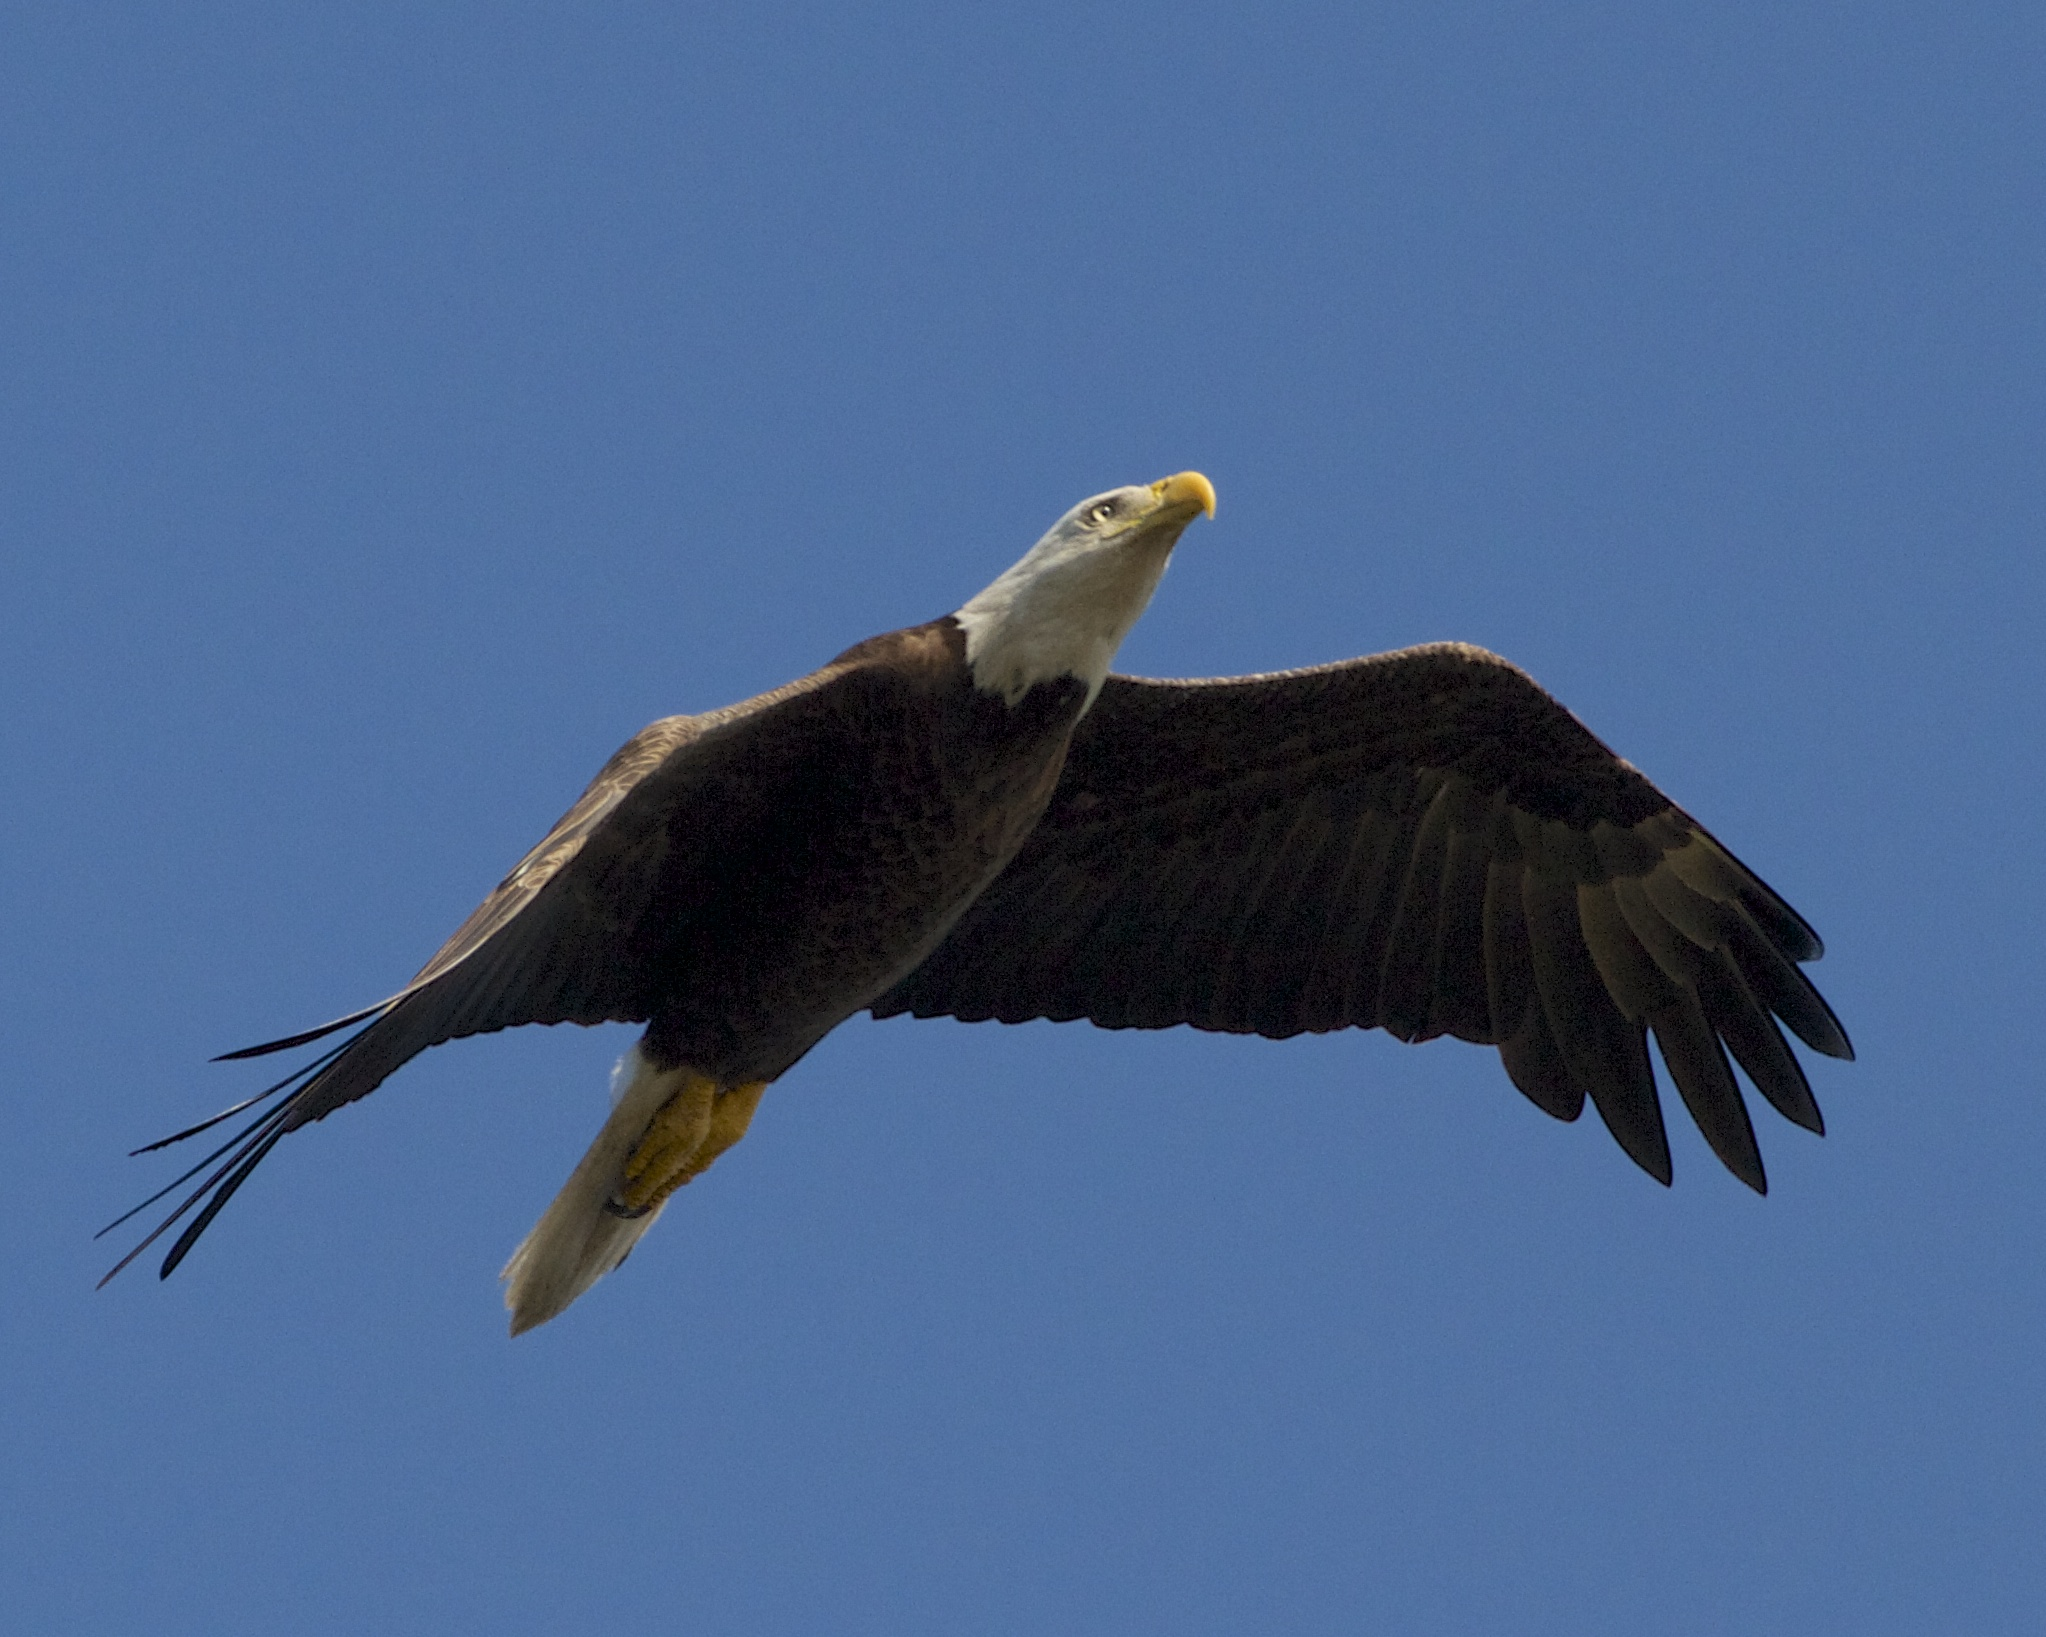 Now a majestic Bald Eagle soars over me on the dock!